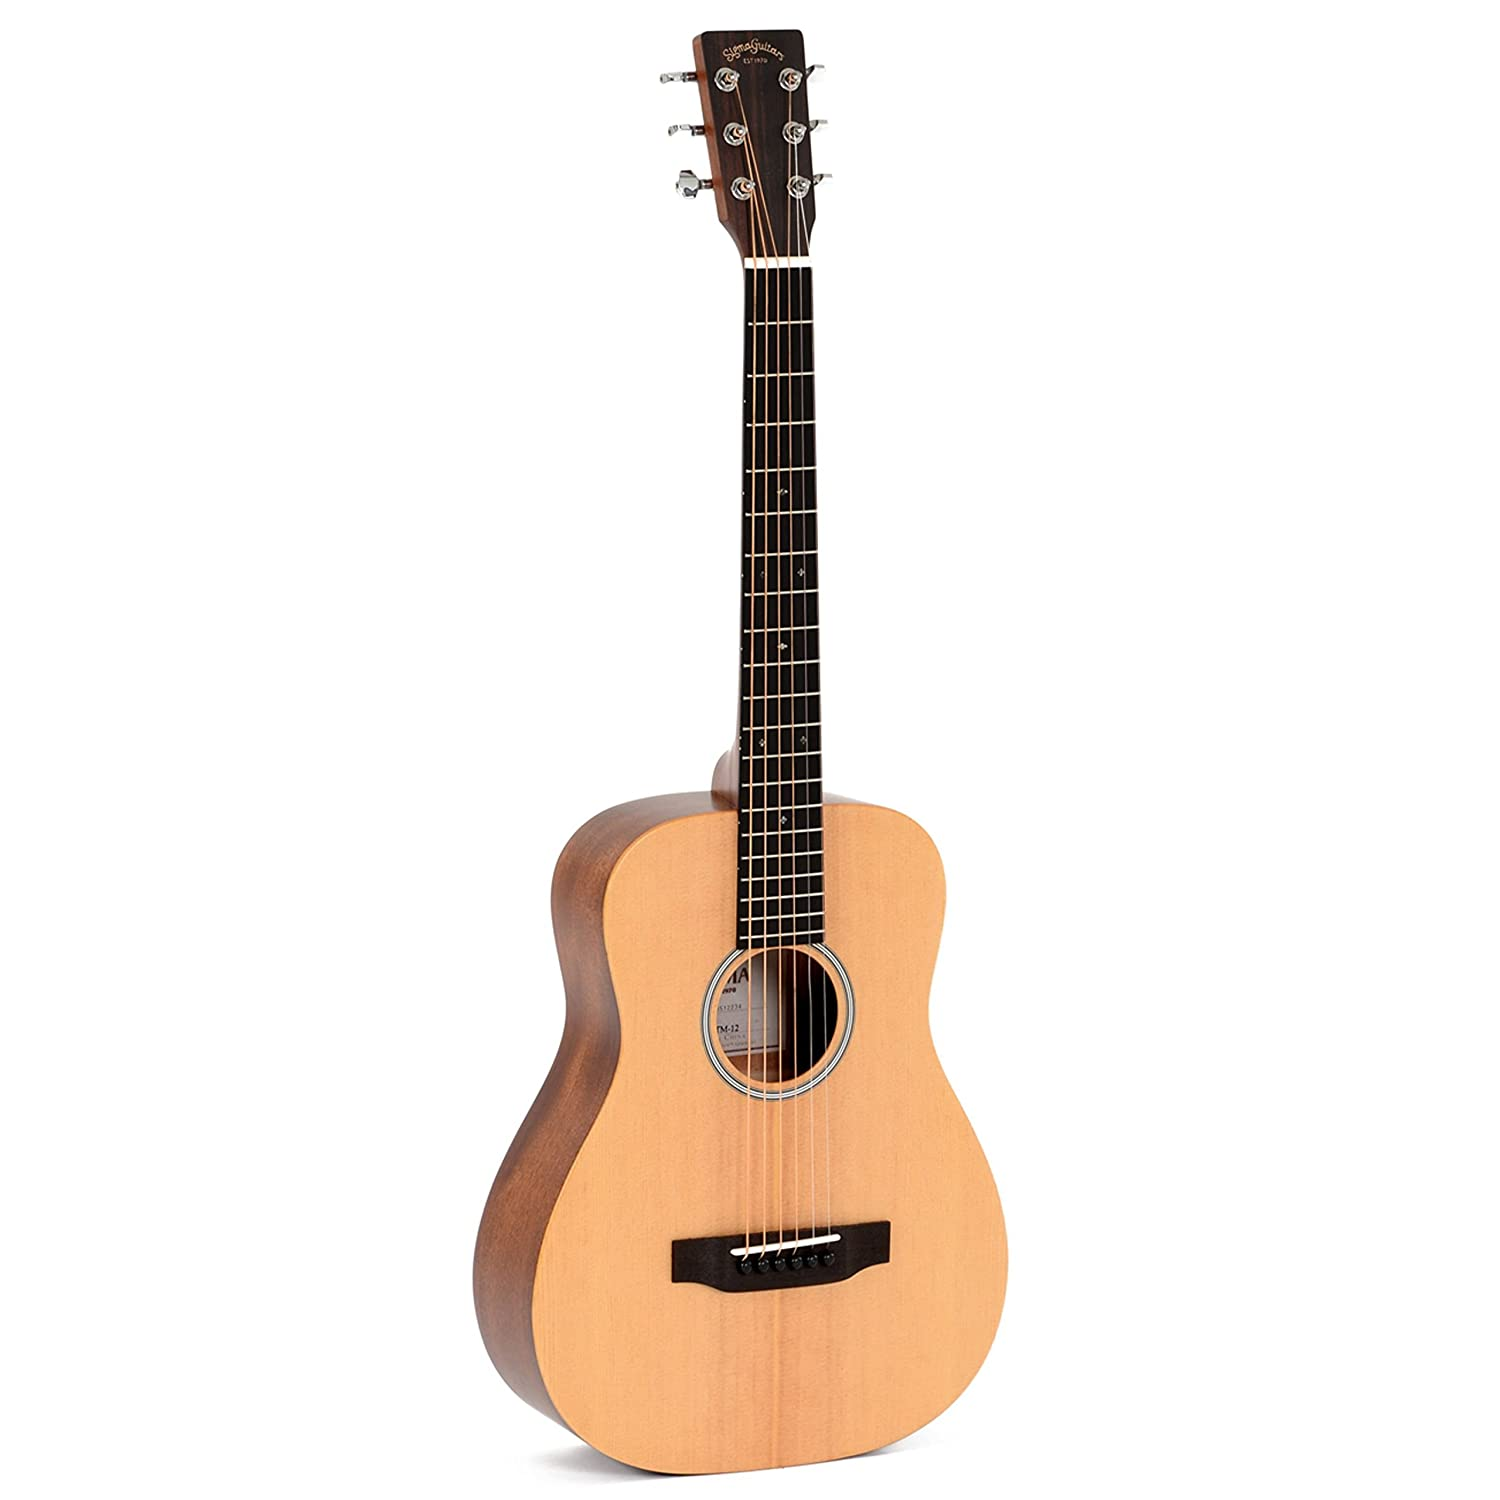 大割引 Sigma: TM12+ B079LJ3VW9 Travel Acoustic Guitar (With Guitar Bag). Travel For アコースティックギター B079LJ3VW9, アツマチョウ:d3bd0b59 --- demo.koveru.com